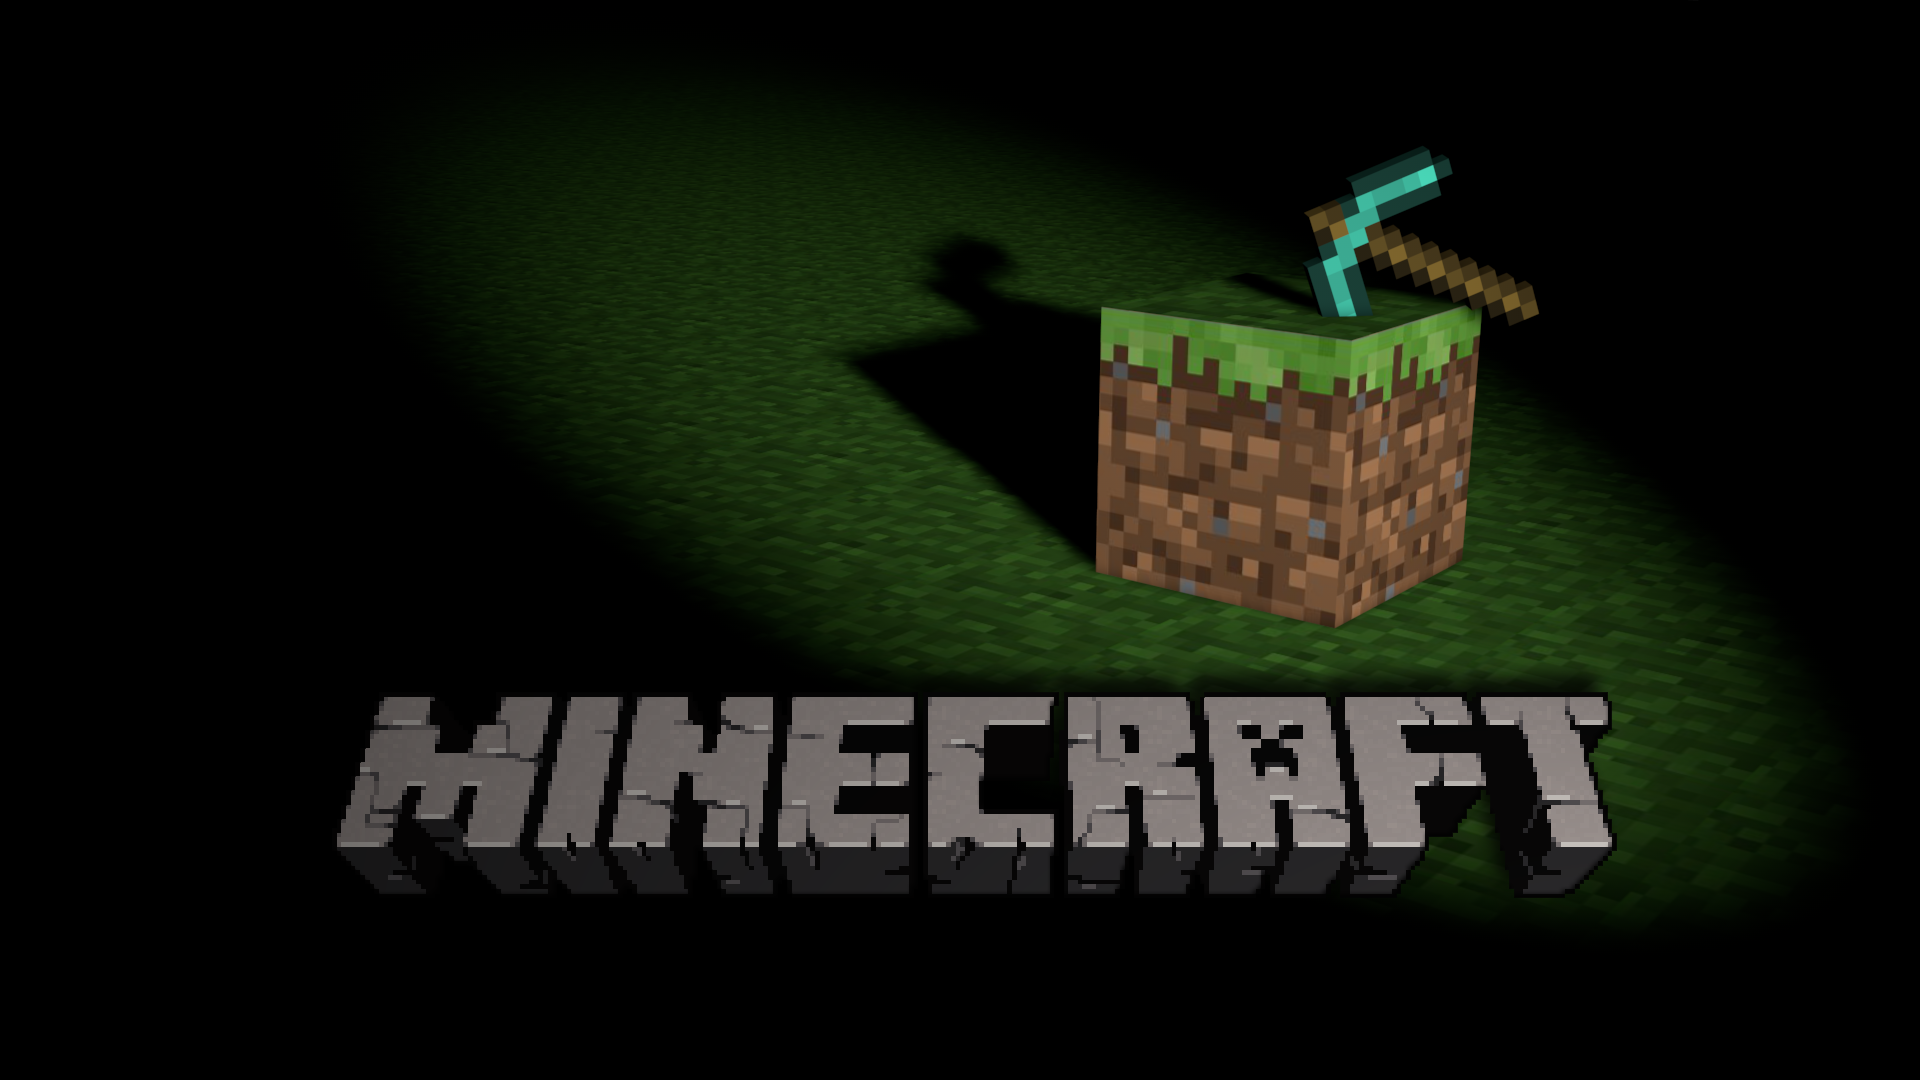 6 Cool Minecraft Backgrounds for Your